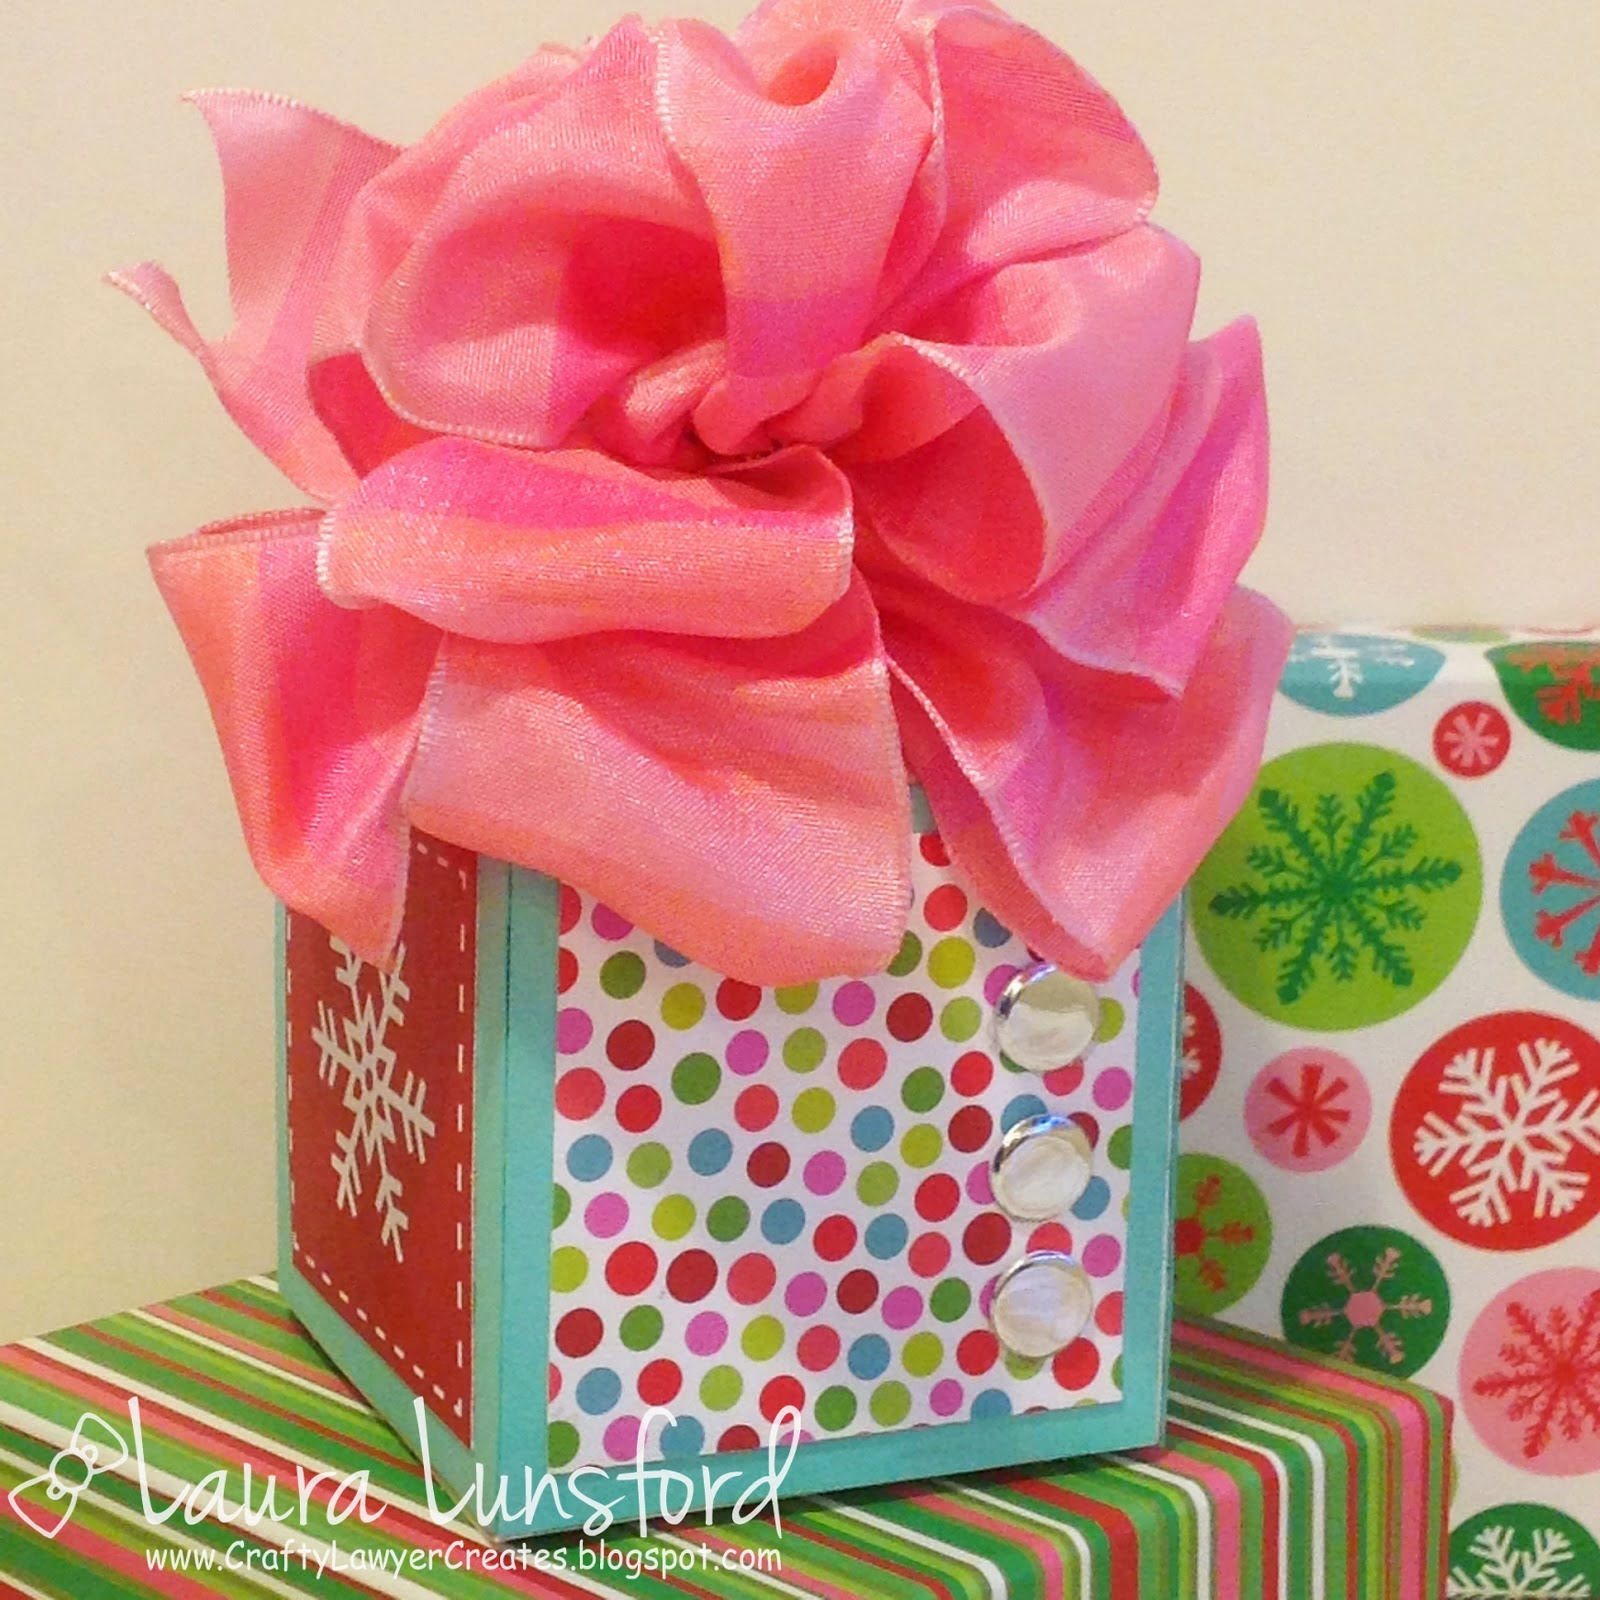 http://craftylawyercreates.blogspot.com/2015/01/little-quick-bowdabra-bow-tutorial.html